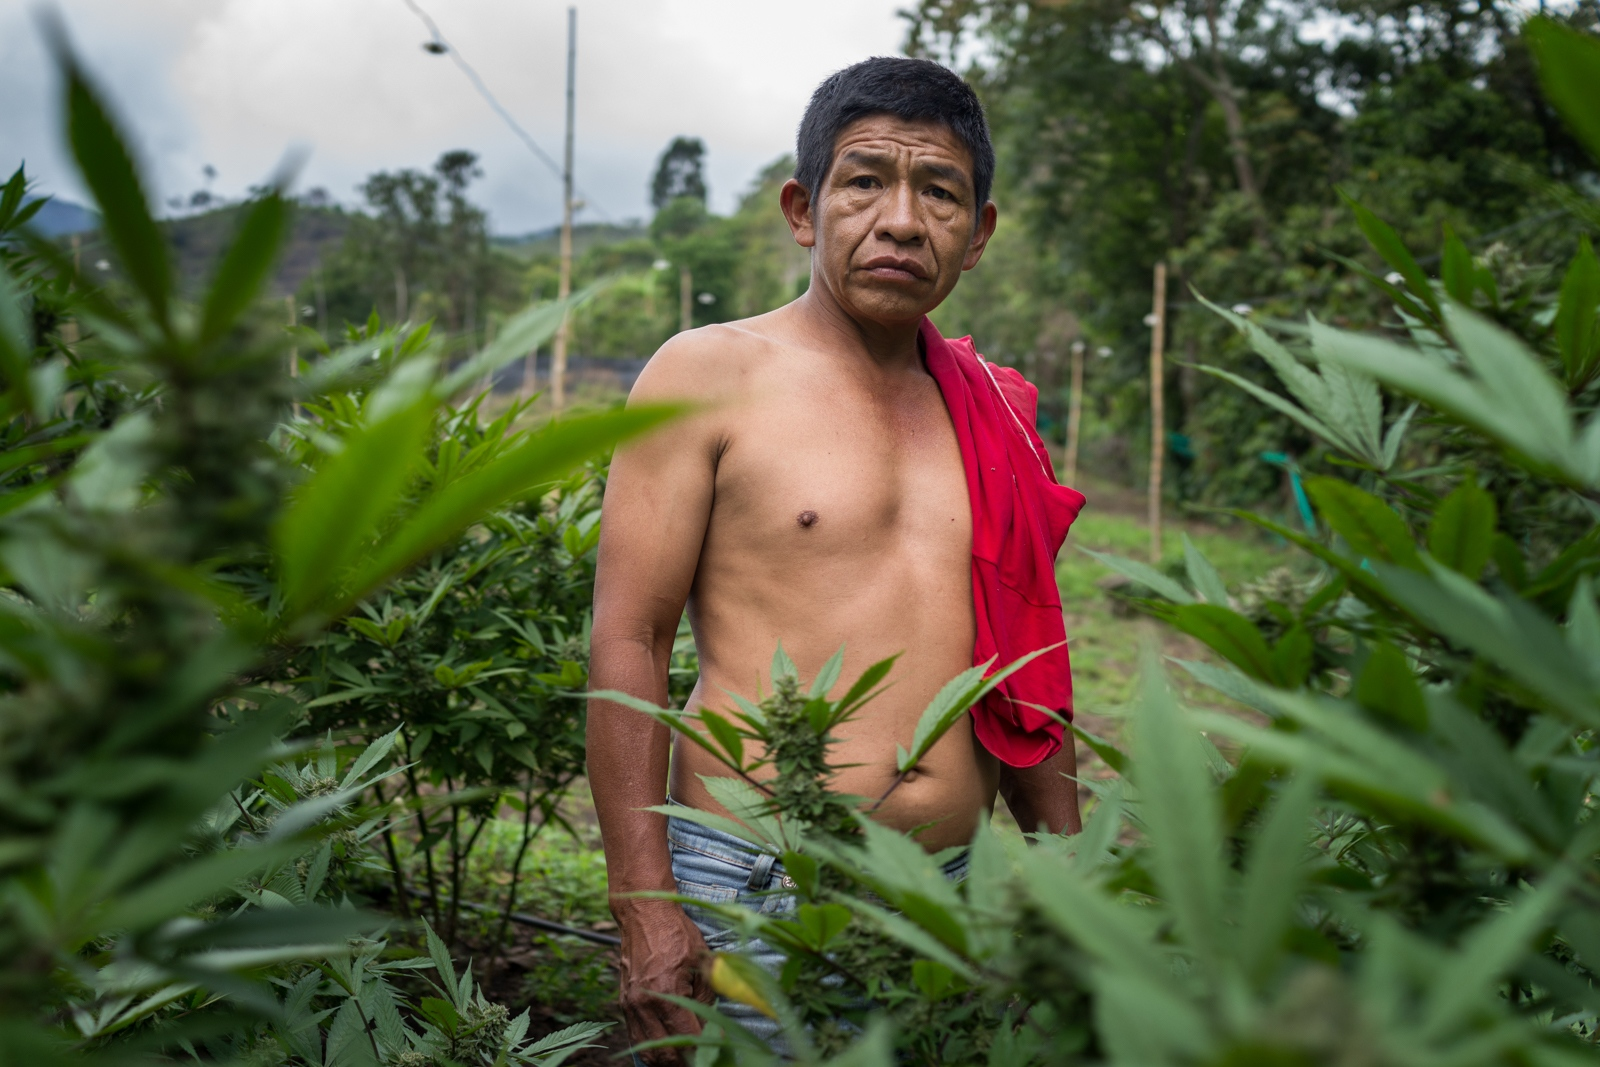 Sebastian, born in Toribio is one of the several inhabitants of the municipalityof Toribio that grows marijuana illegally in Colombia. he sells his product to local clients who afterwards will either sell it nationally or export it to Trinidad & Tobago, Puerto Rico or Panama.